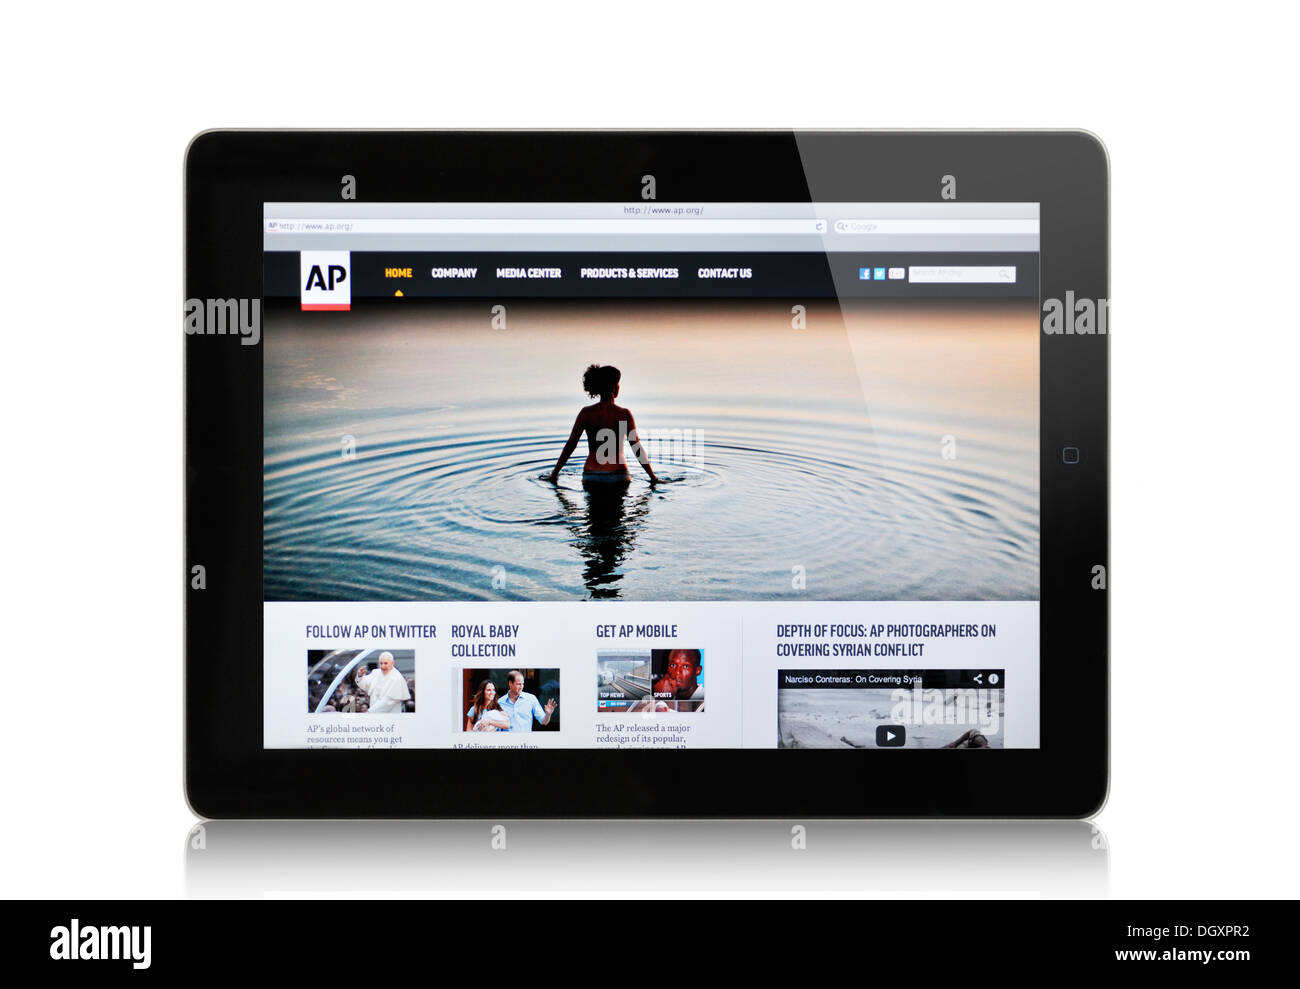 Associated Press website on iPad screen - Stock Image